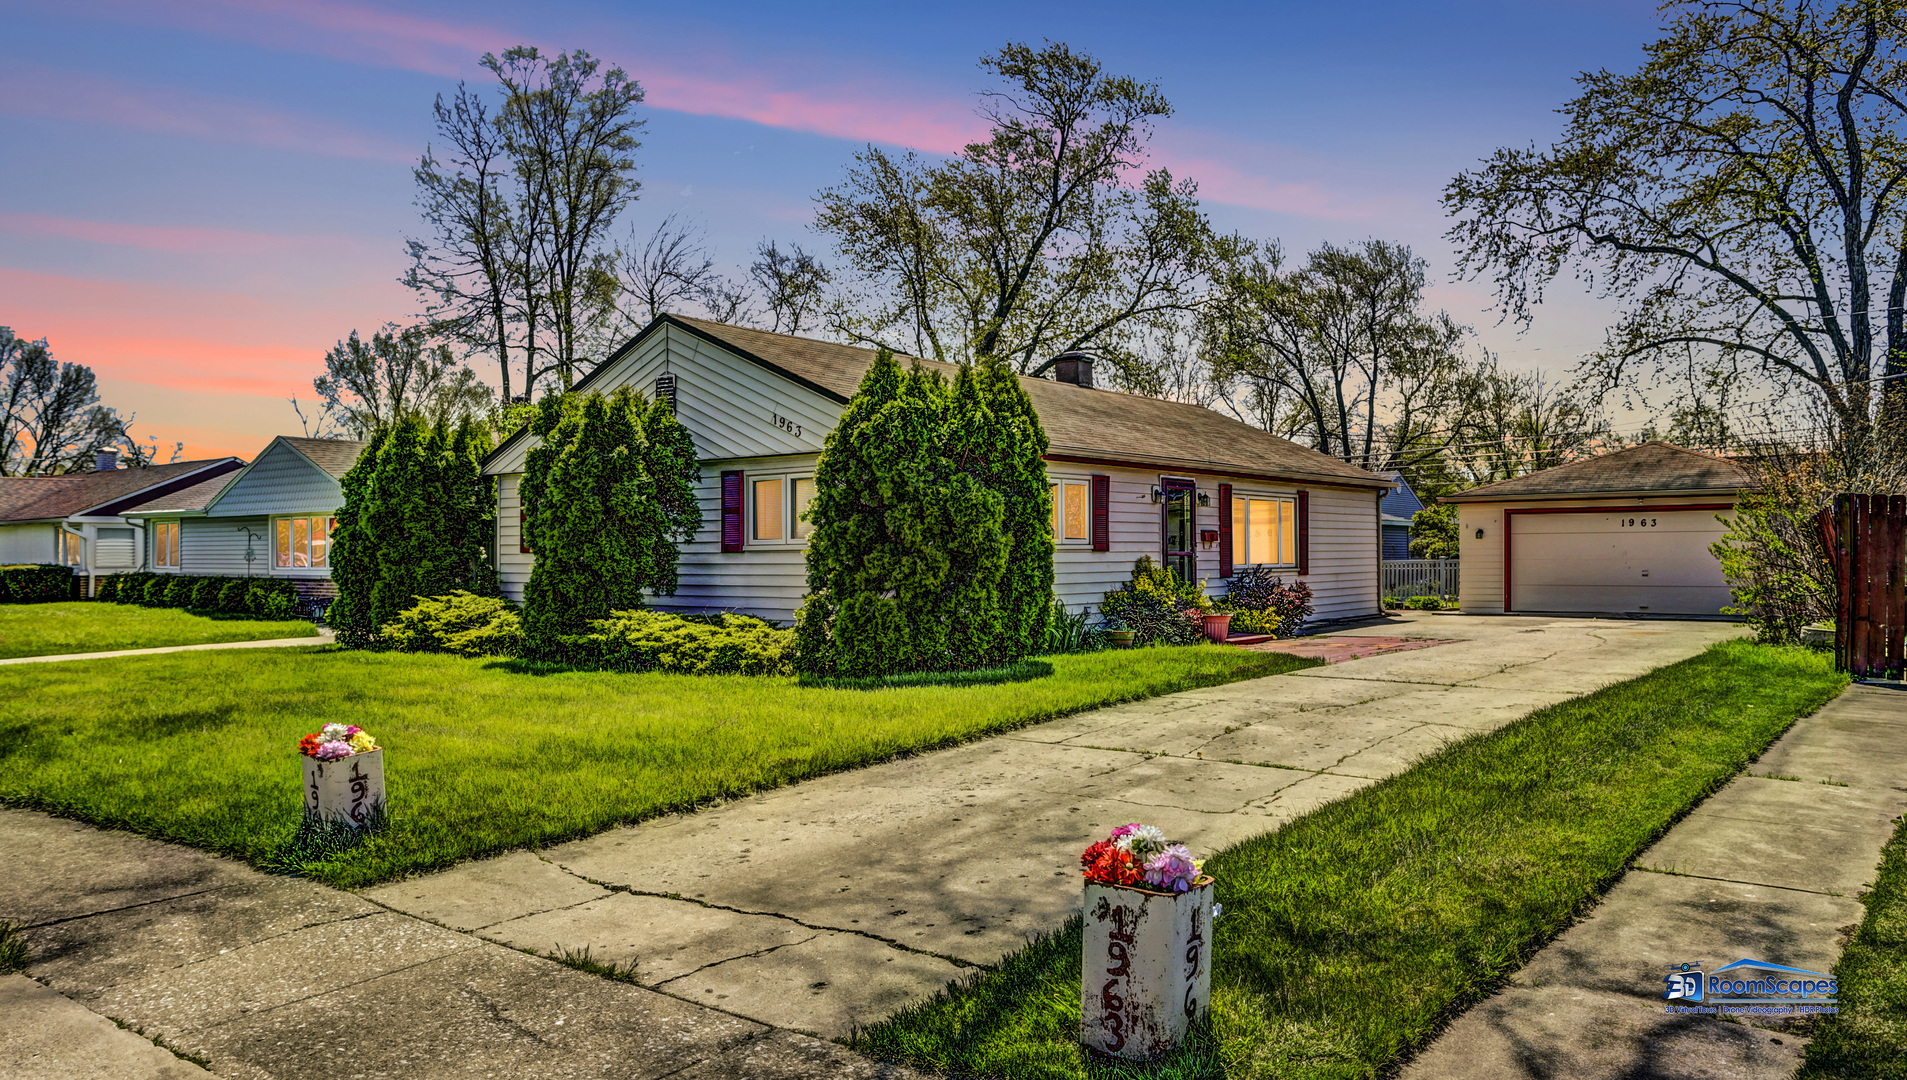 1963 Welwyn Avenue, Des Plaines in Cook County, IL 60018 Home for Sale